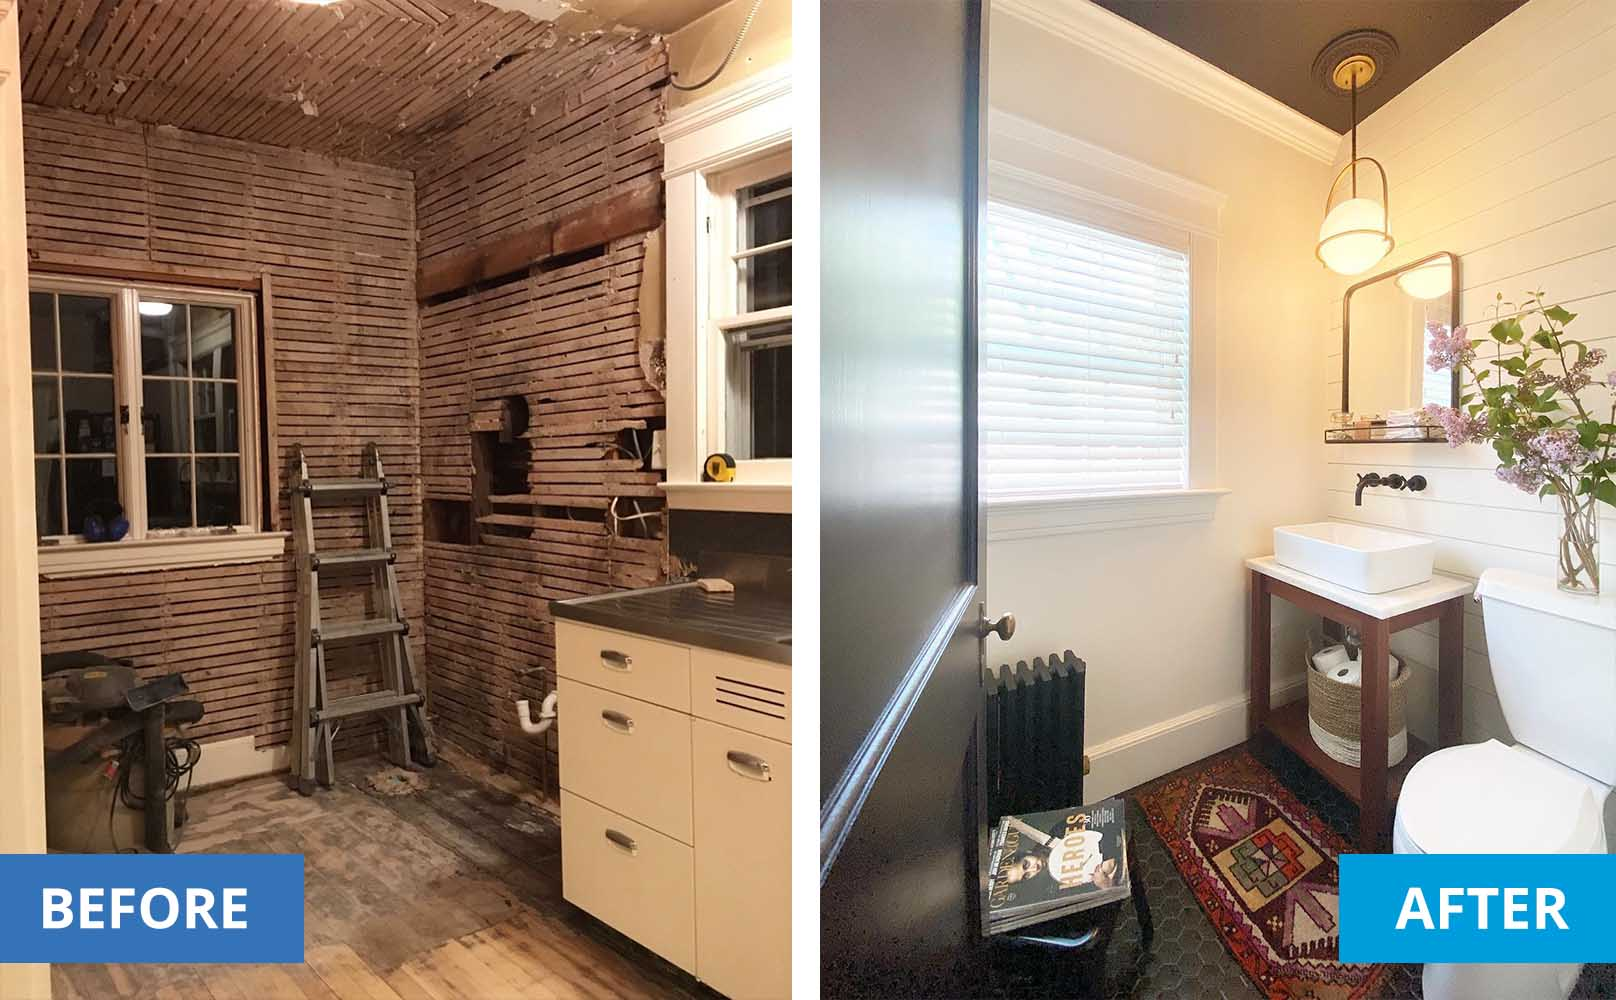 left is a gutted bathroom. Right is the same bathroom with new drywall, new toilet and sink, new tiles, faux wood blinds and light fixtures.